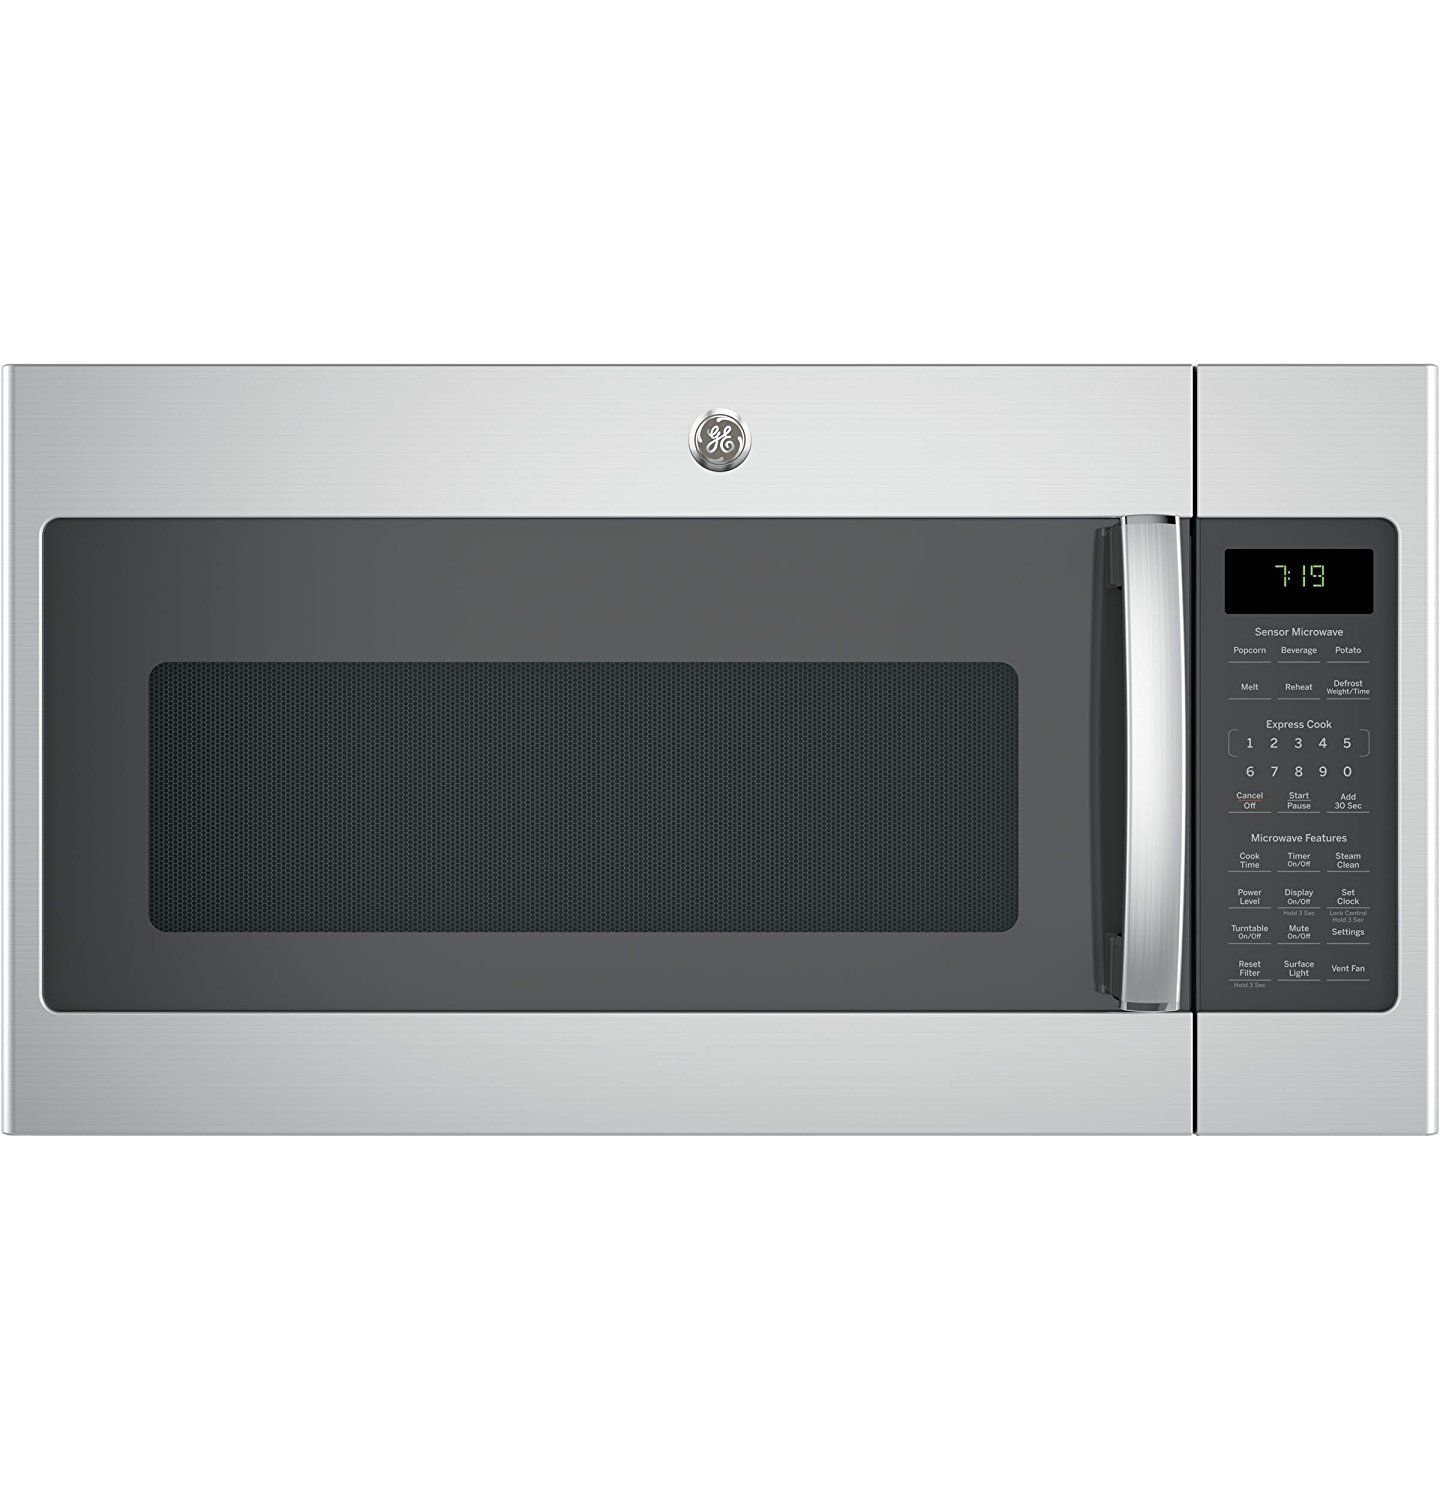 Ge Jnm7196skss 30 Over The Range Microwave Oven In Stainless Steel Click Image To Review More Details